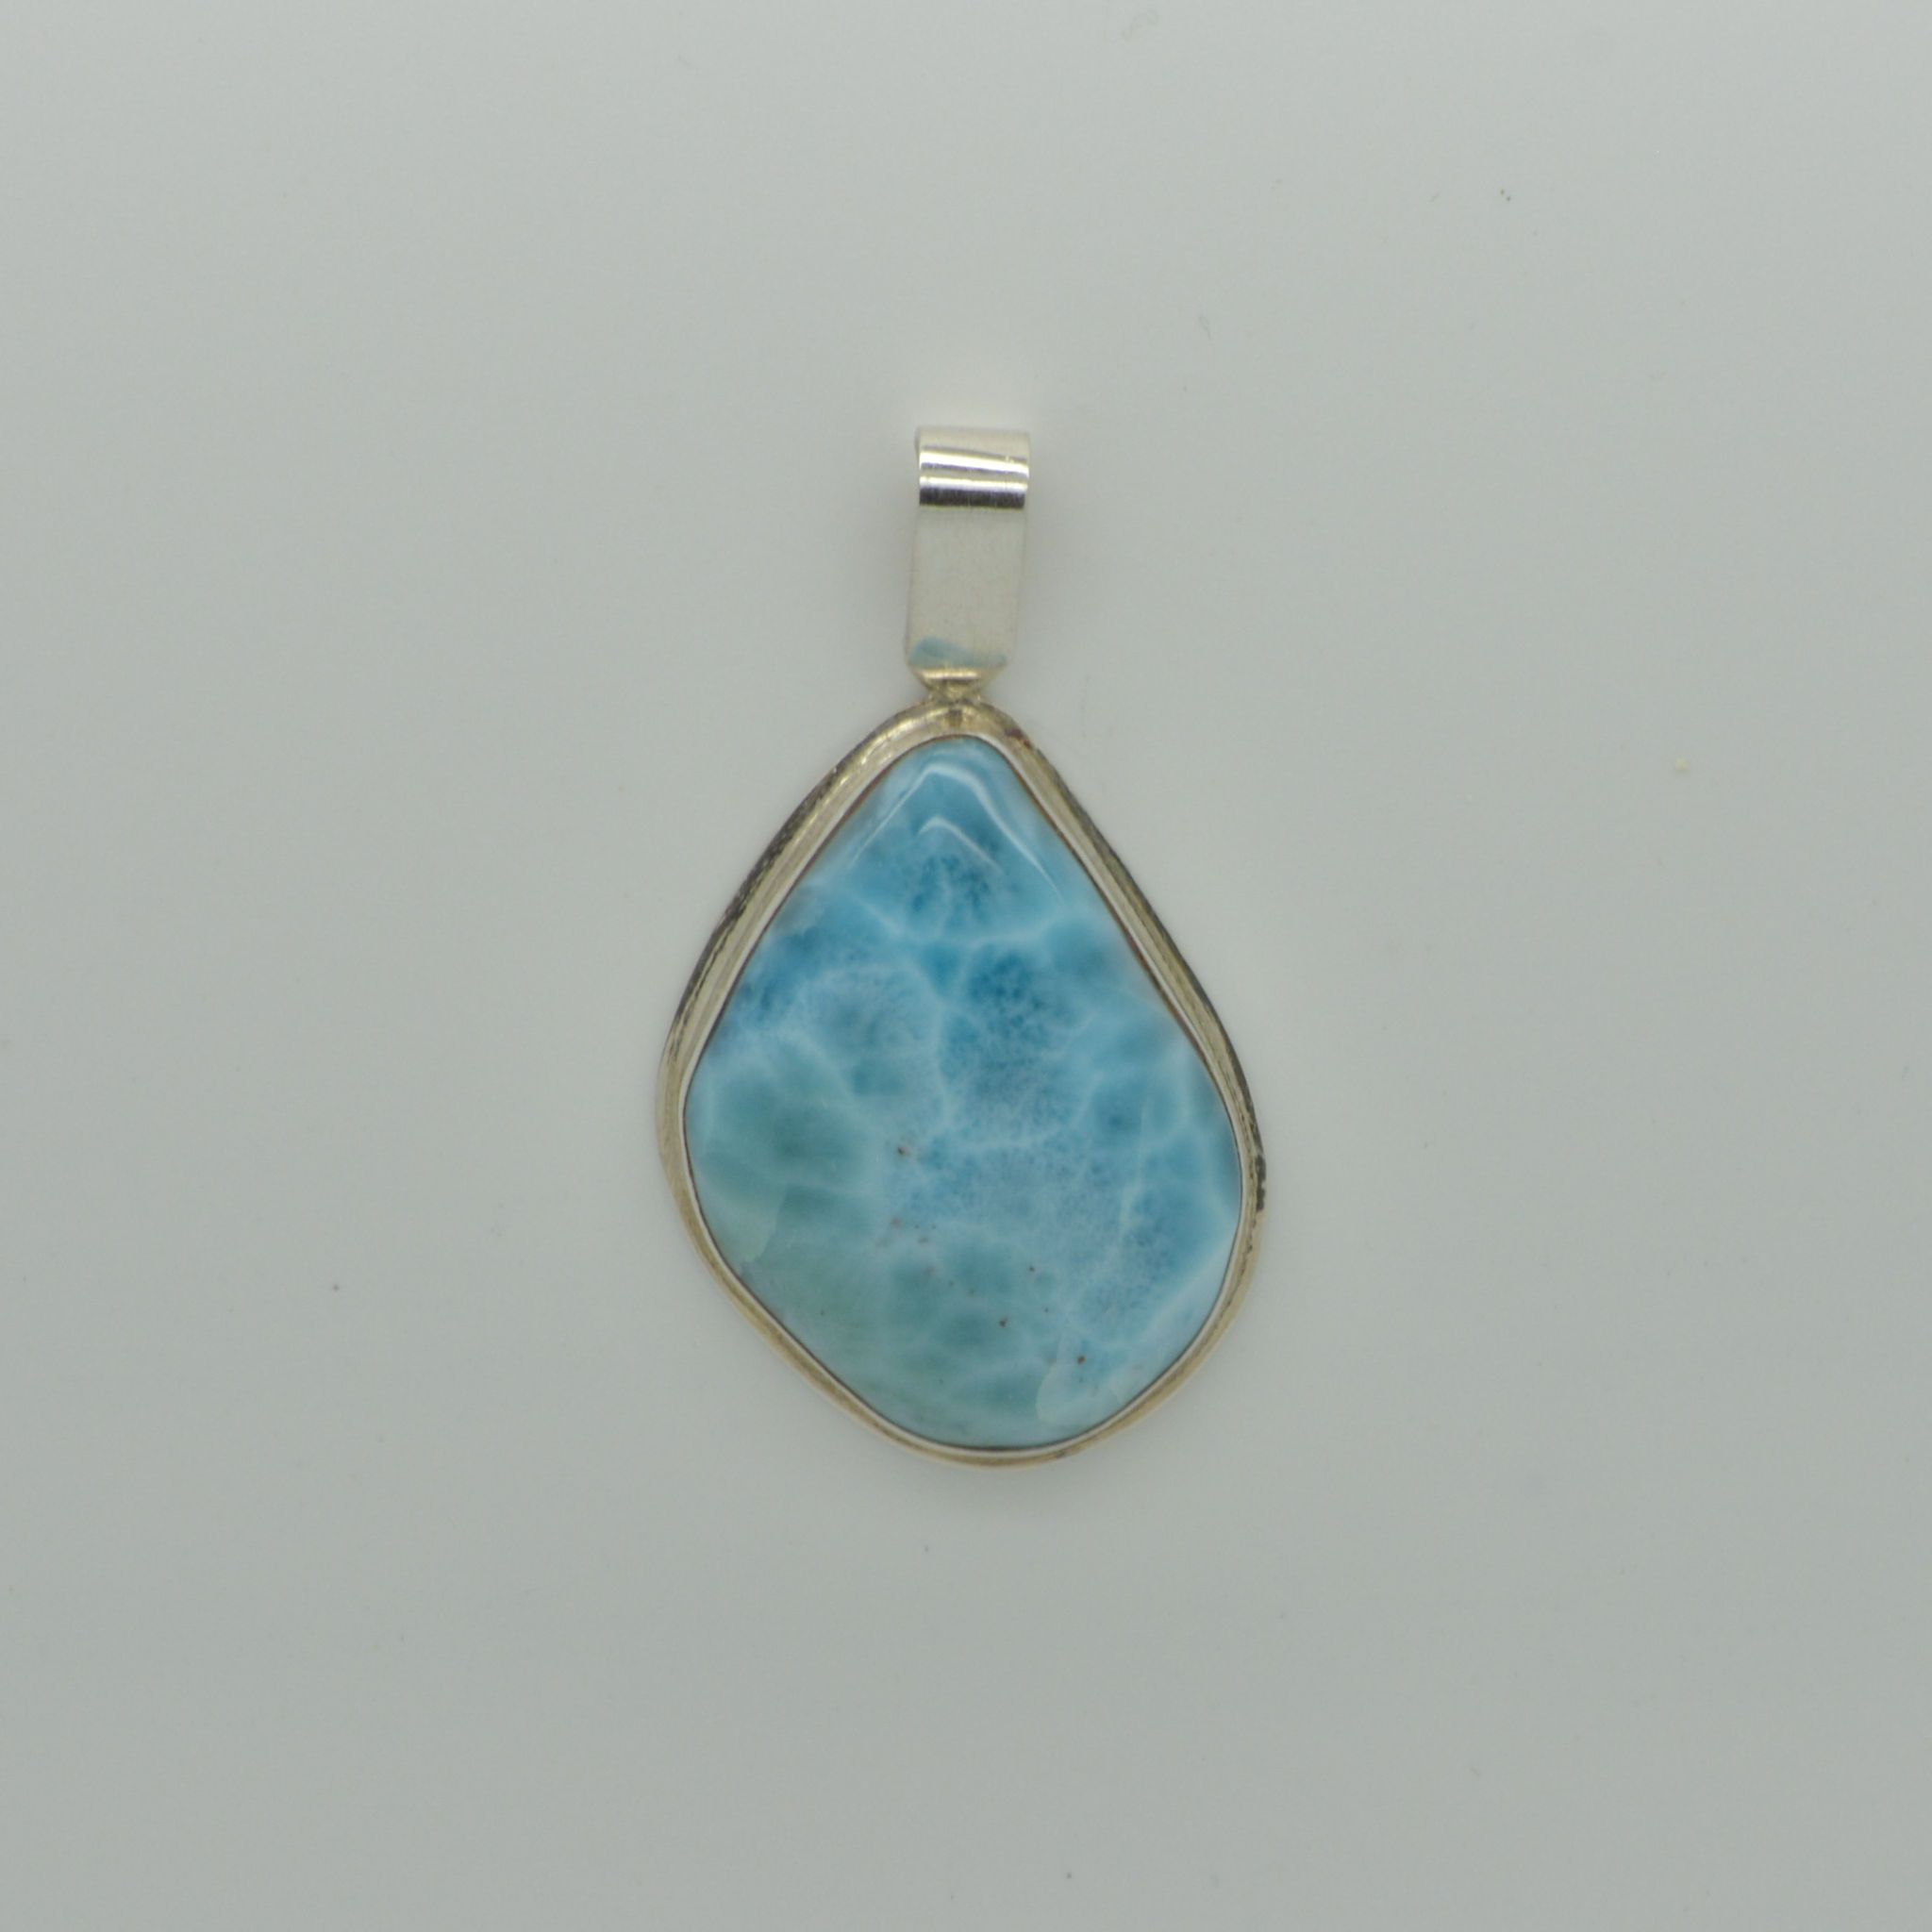 Medium Larimar Pear Pendant       11.8g